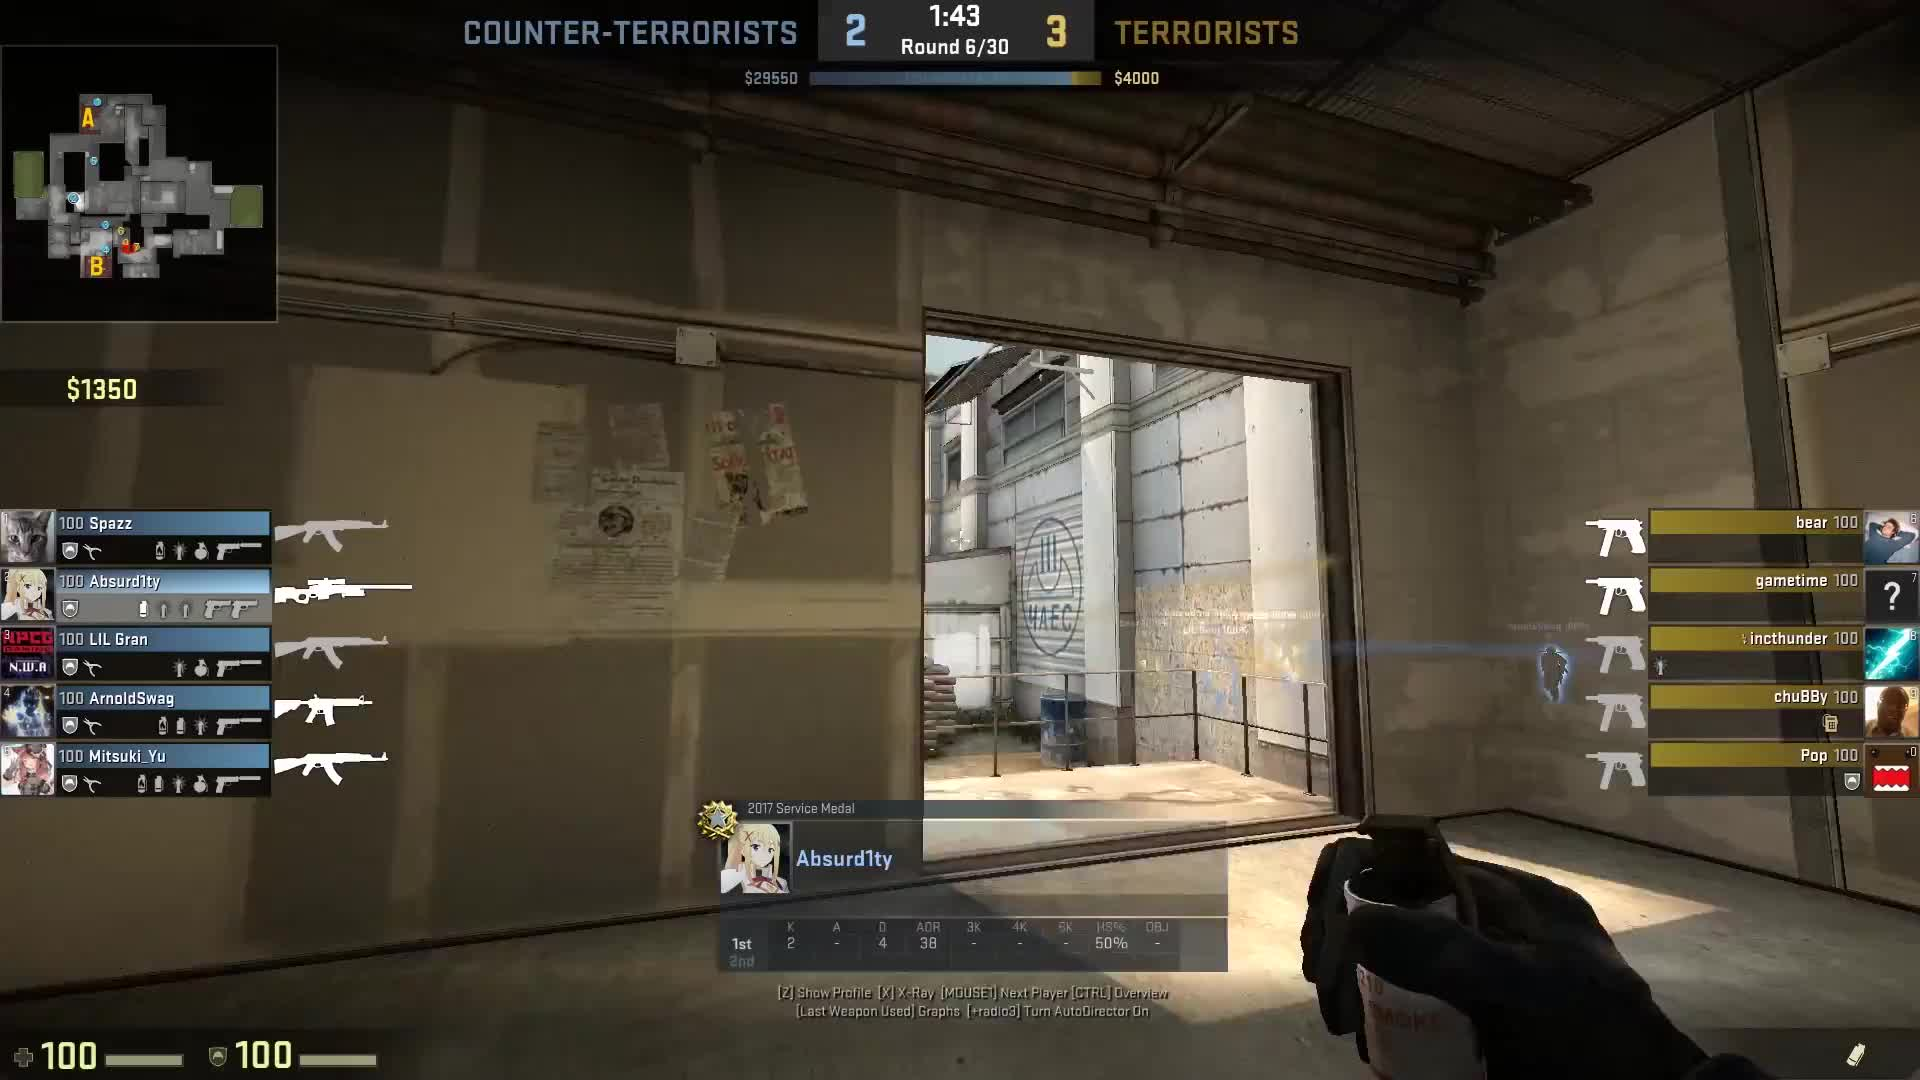 cache, collat, collateral, counterstrike, counterstrike global offensive, csgo, dmg, global, globaloffensive, le, mm, nutty, offensive, triple, wallbang, When The Stars Align [CS:GO] GIFs